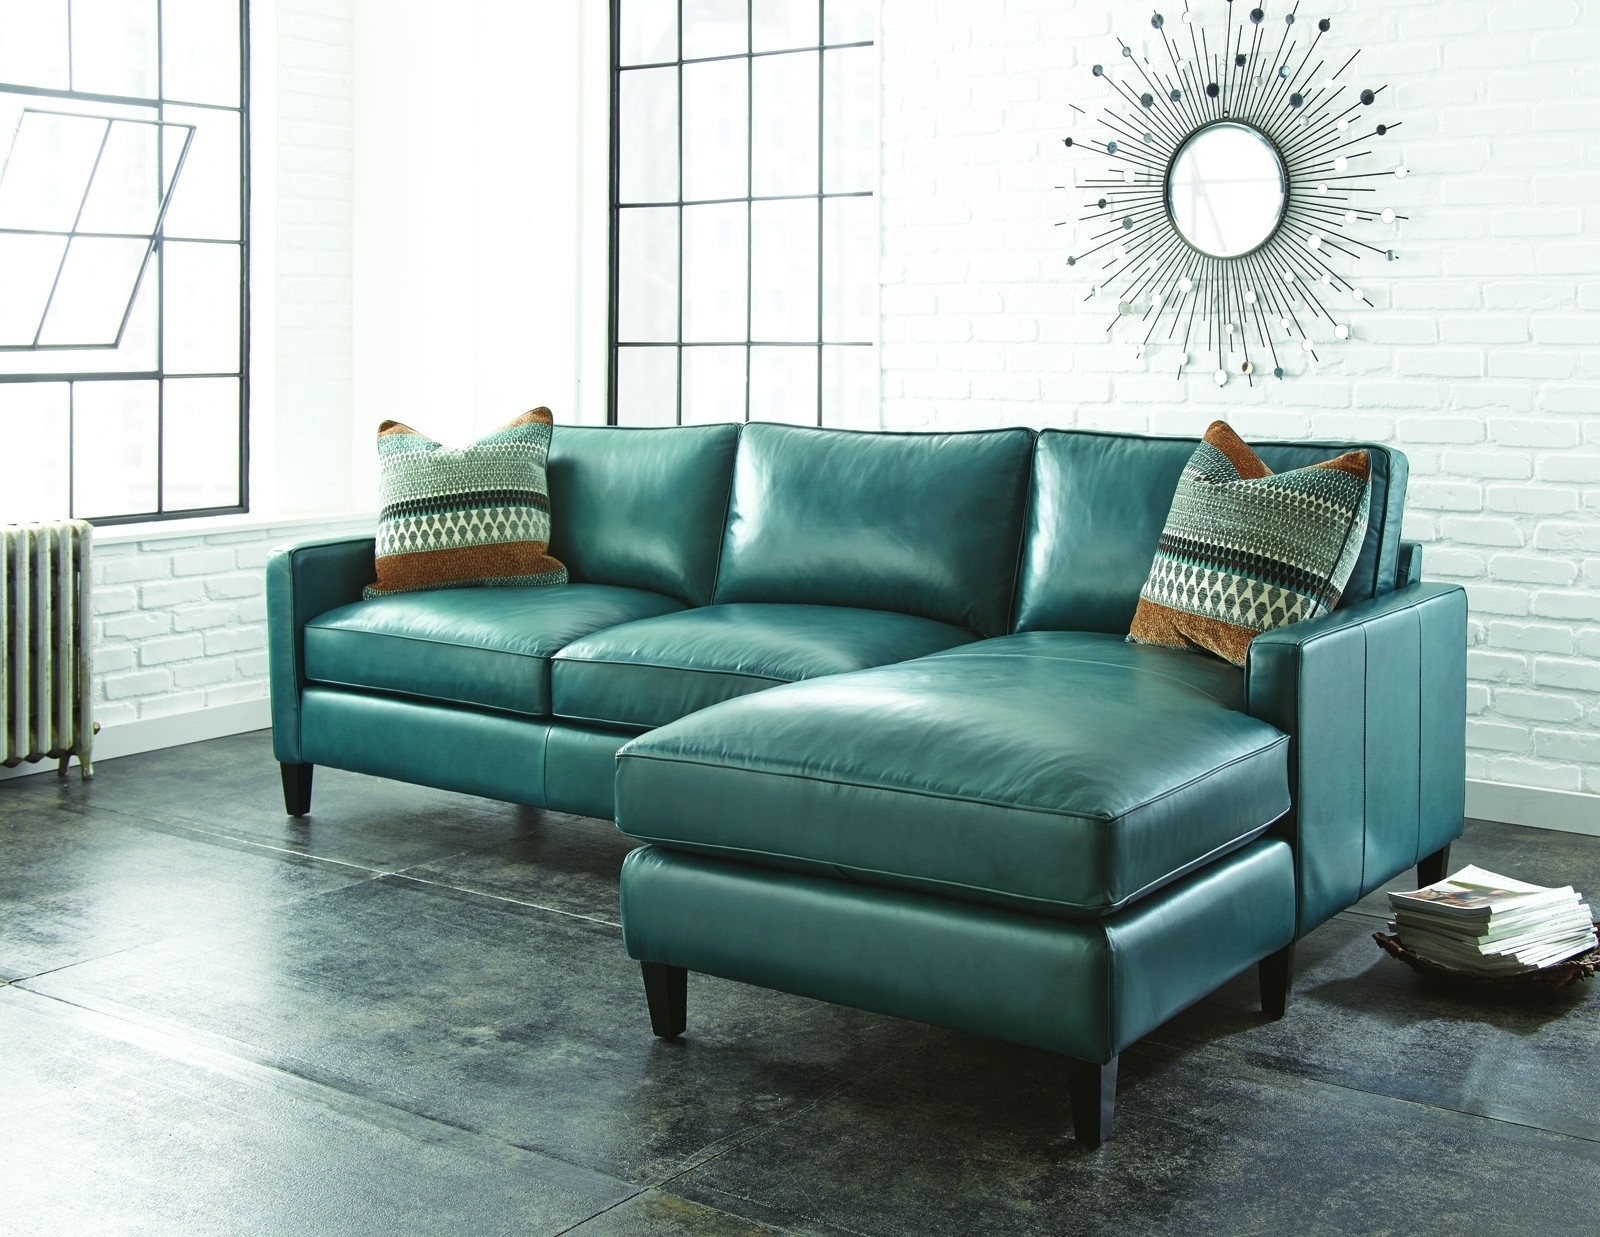 Famous Turquoise Sofas Pertaining To Turquoise Leather Sectional Sofa For Living Room With Sun Wall (View 3 of 20)